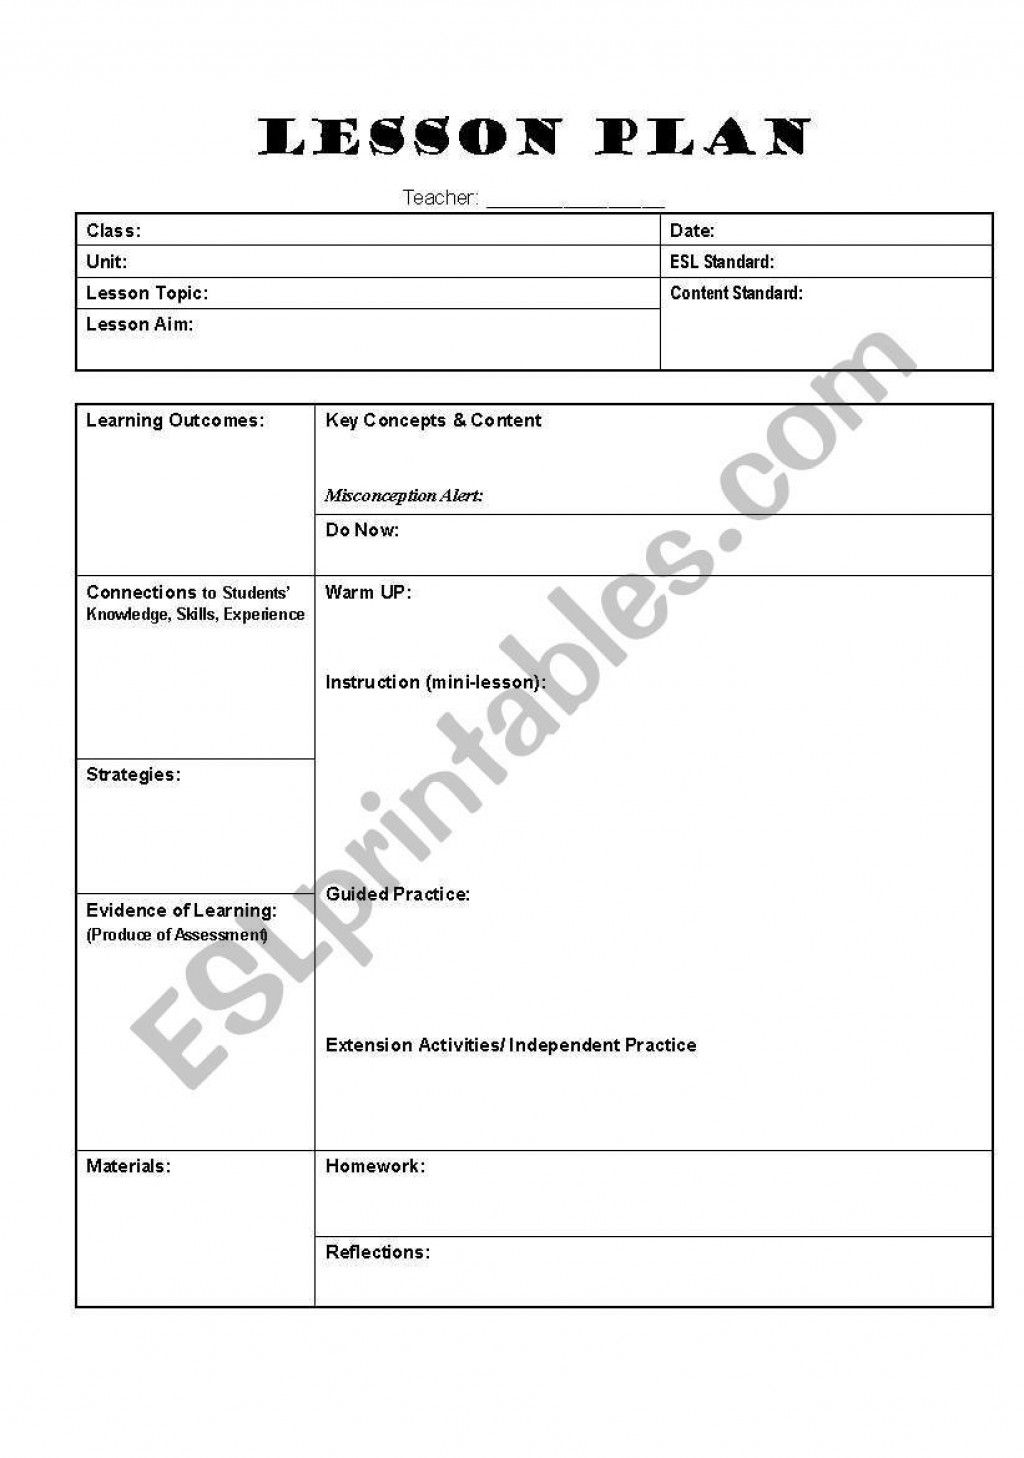 001 Incredible Unit Lesson Plan Template Design  Word Thematic Example PdfLarge